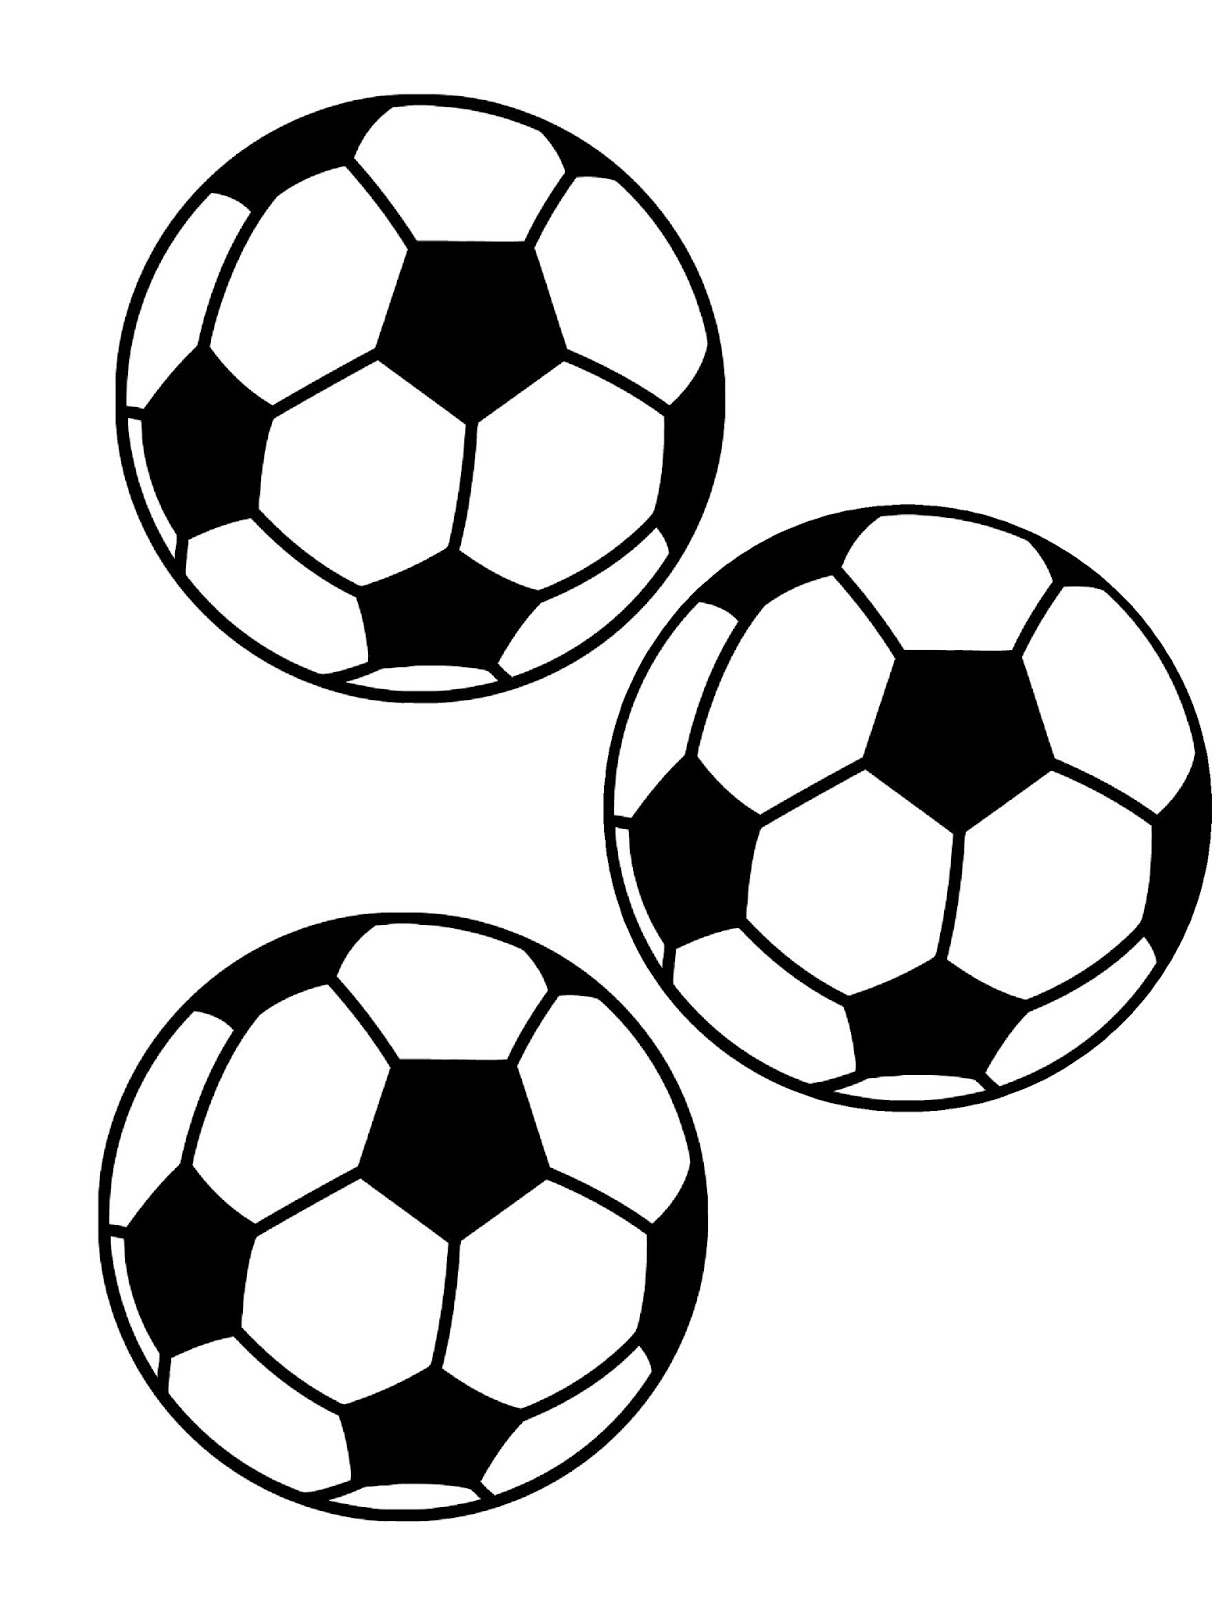 soccer ball coloring page free printable sports balls coloring pages coloring soccer page ball